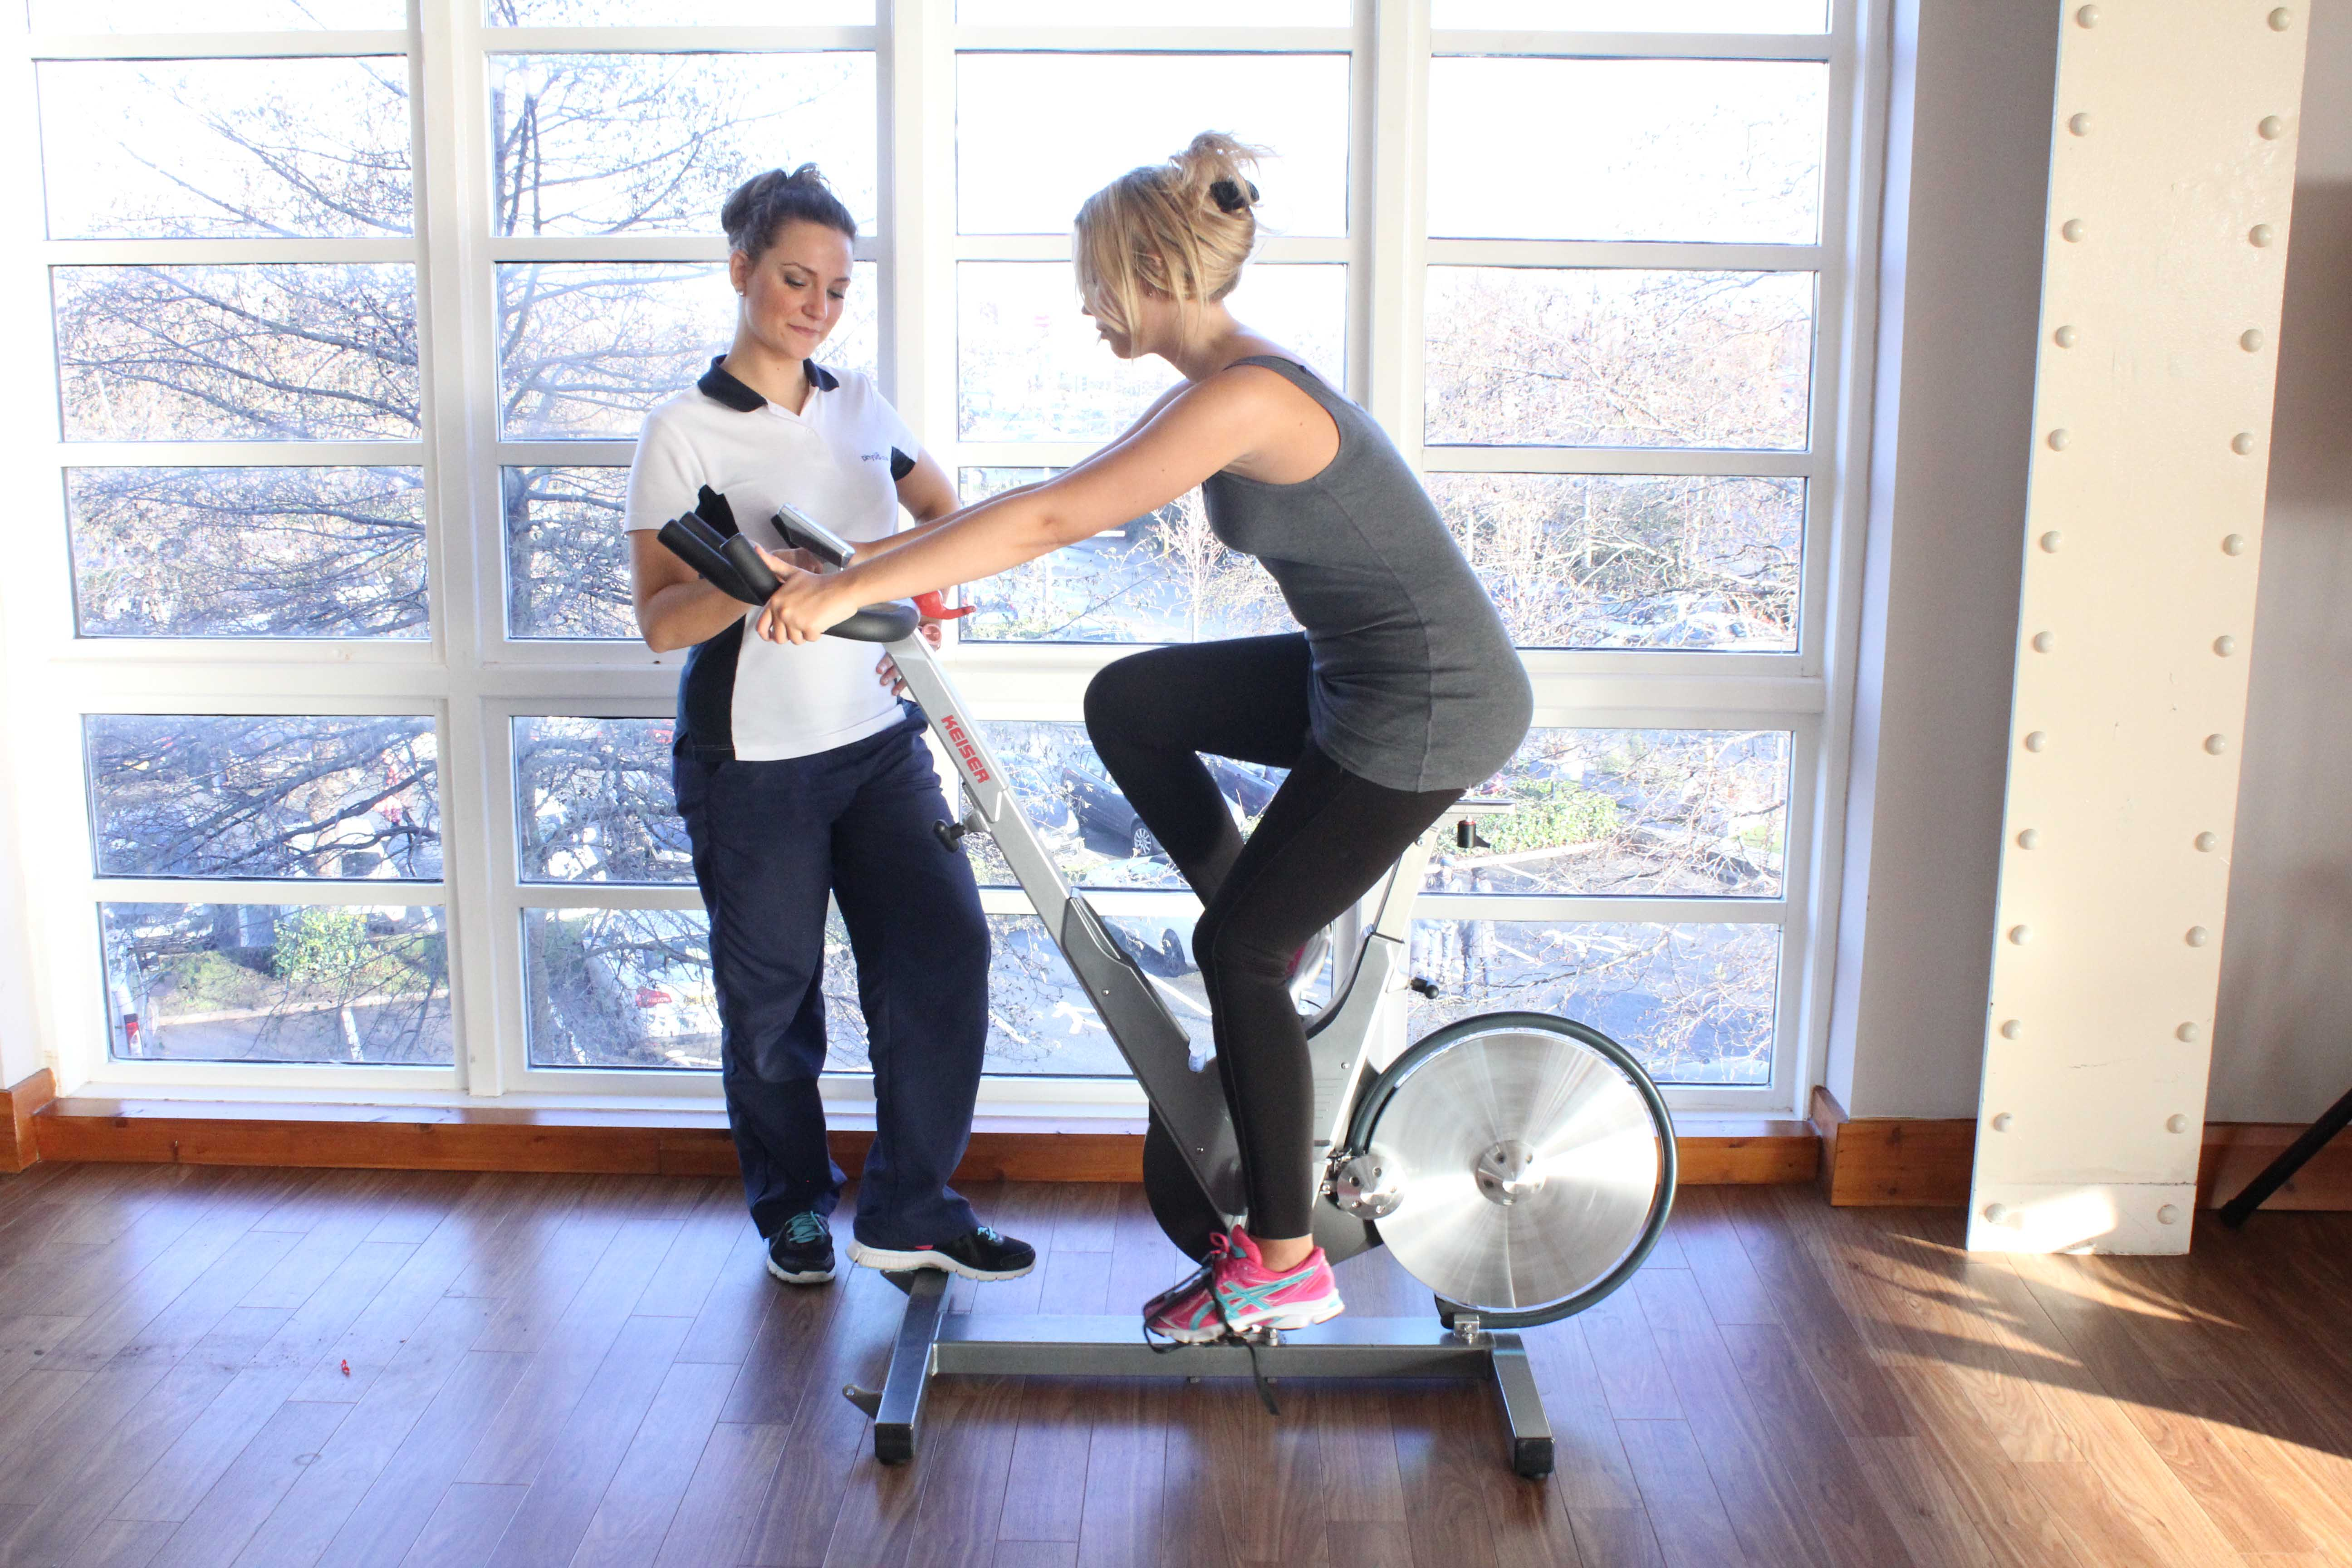 Leg strengthening exercises on a bike supervised by an experienced physiotherapist